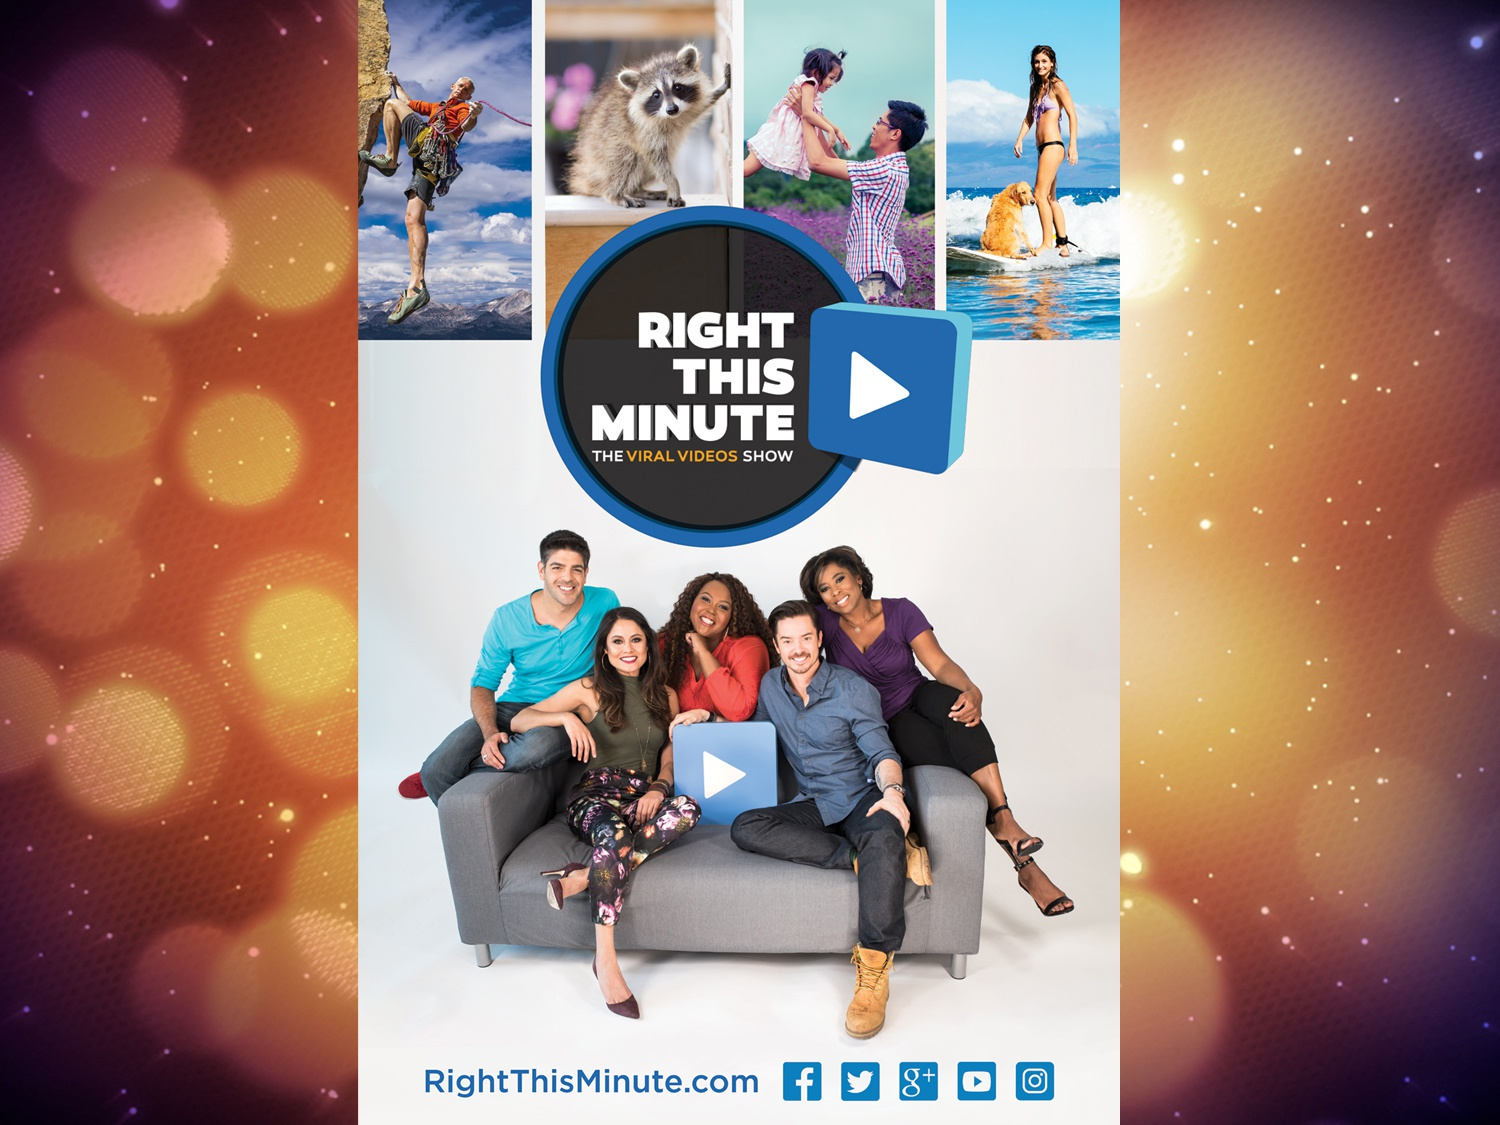 RightThisMinute promo poster by Chris Ayers Creative on Dribbble